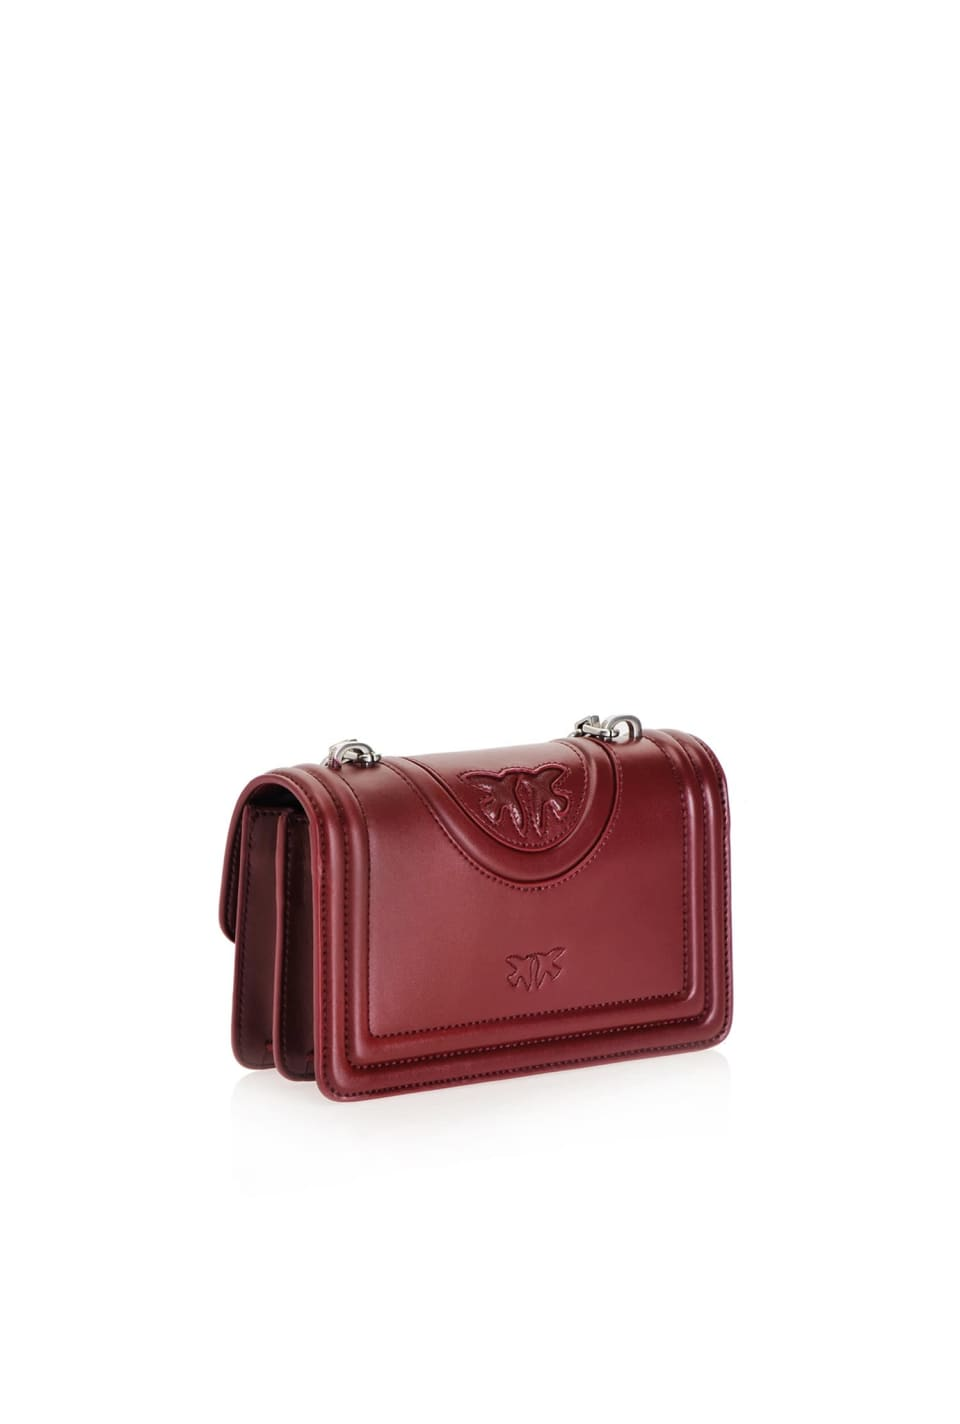 Mini Love Bag New Monogram de napa